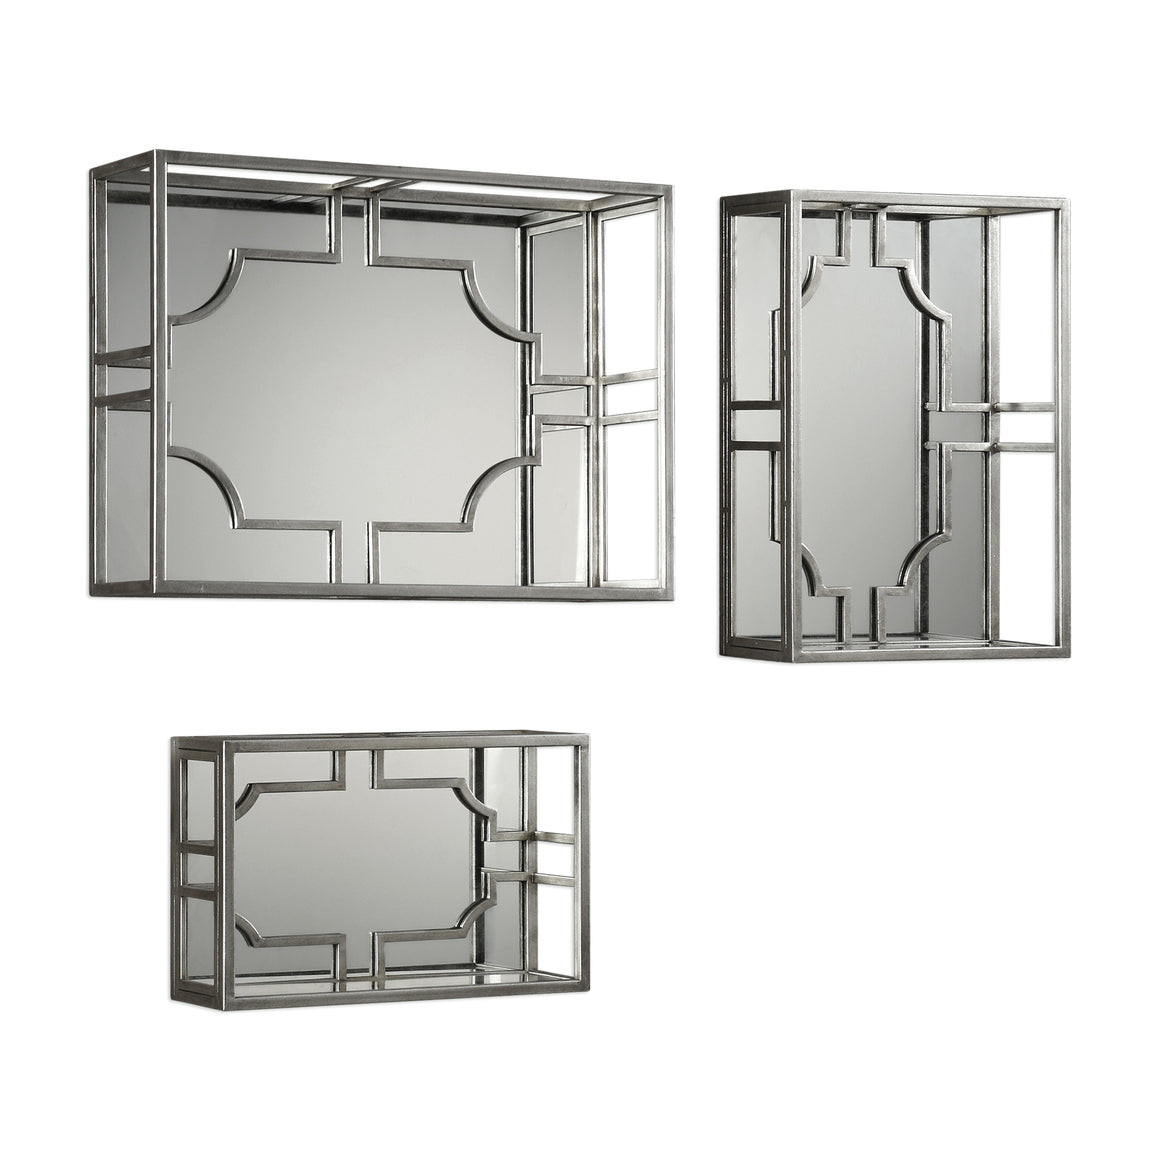 Adoria Silver Wall Shelves S/3